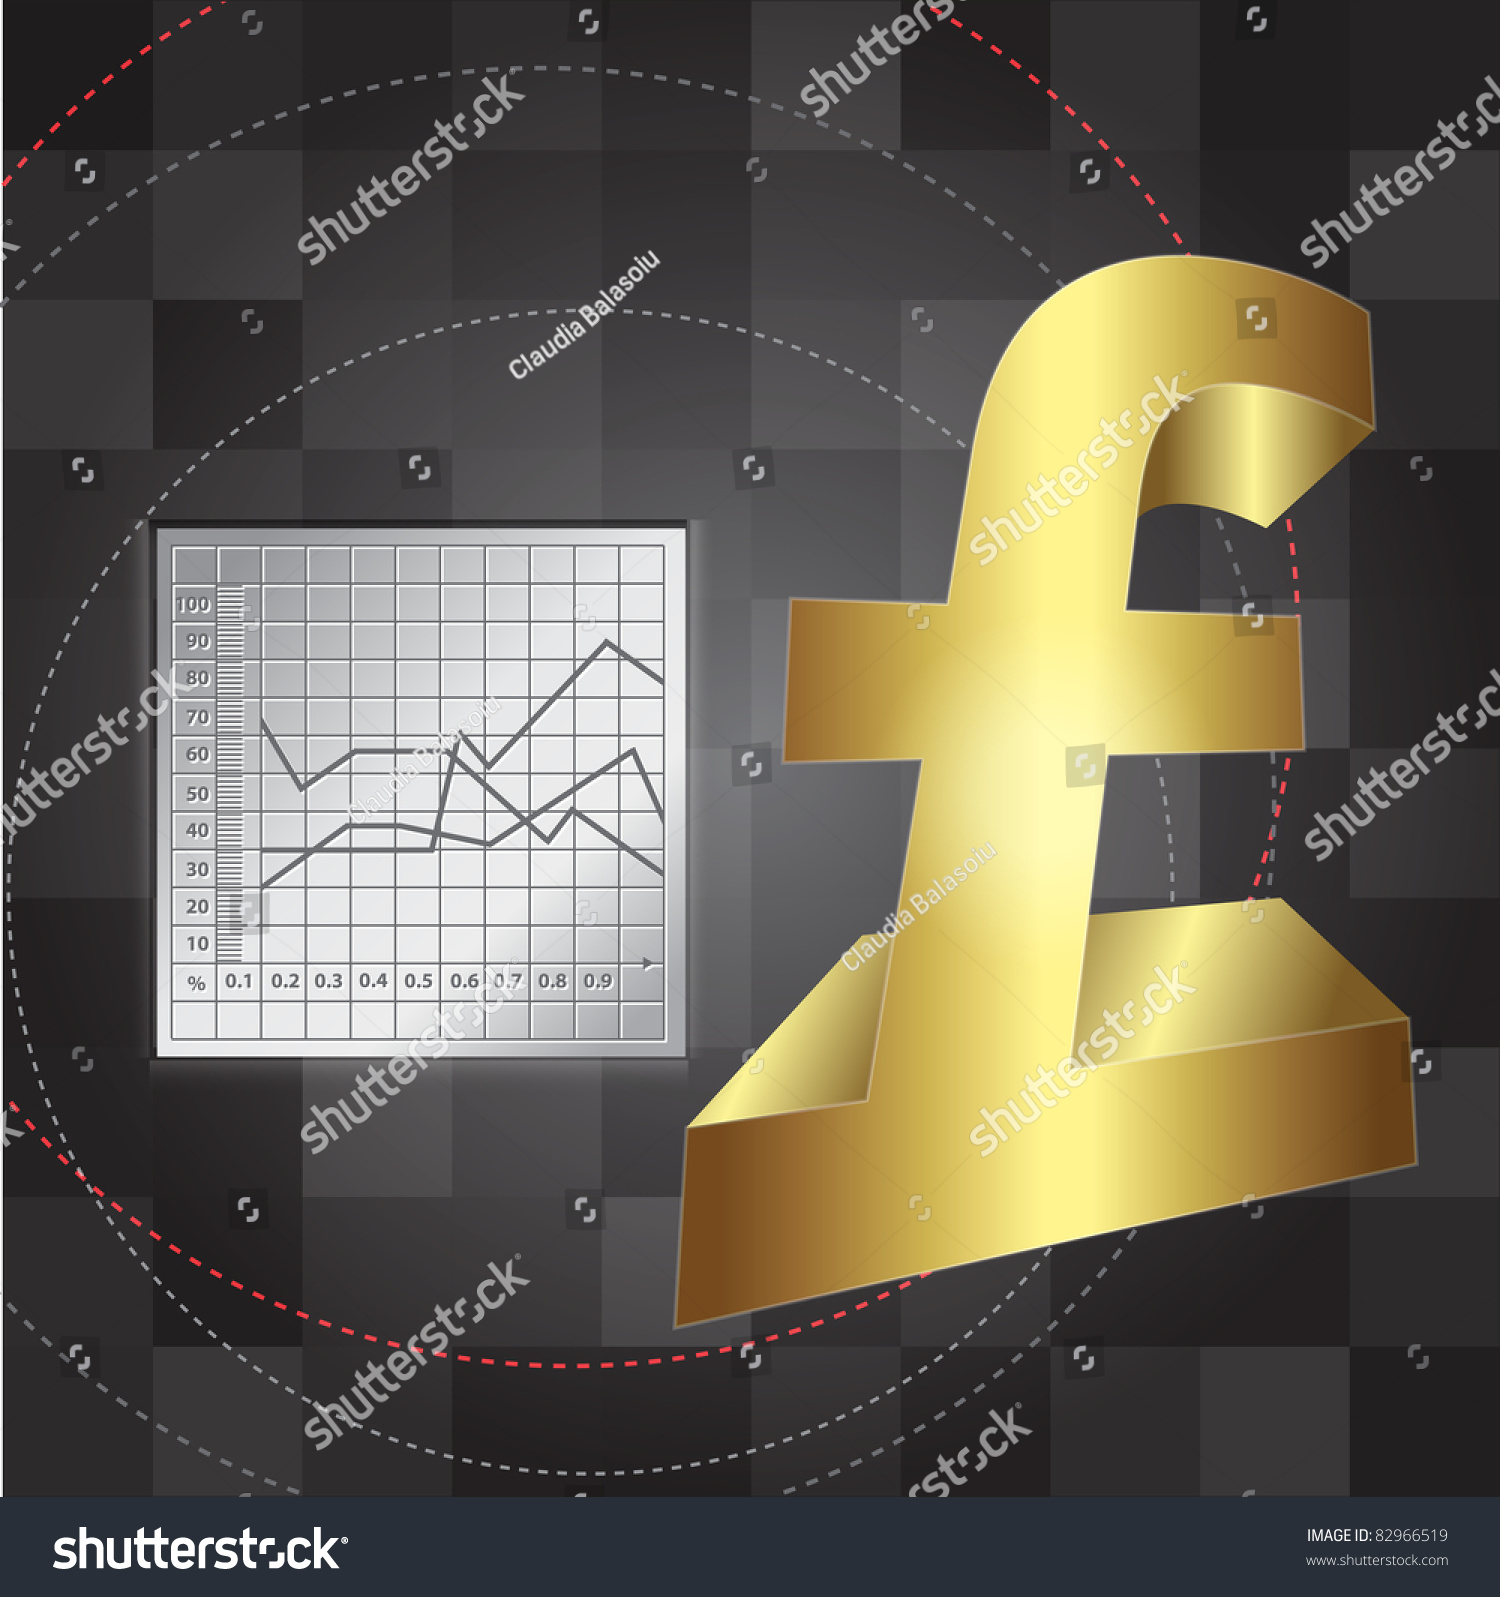 Finance Background: Financial Background With 3d Lira Sign Stock Vector